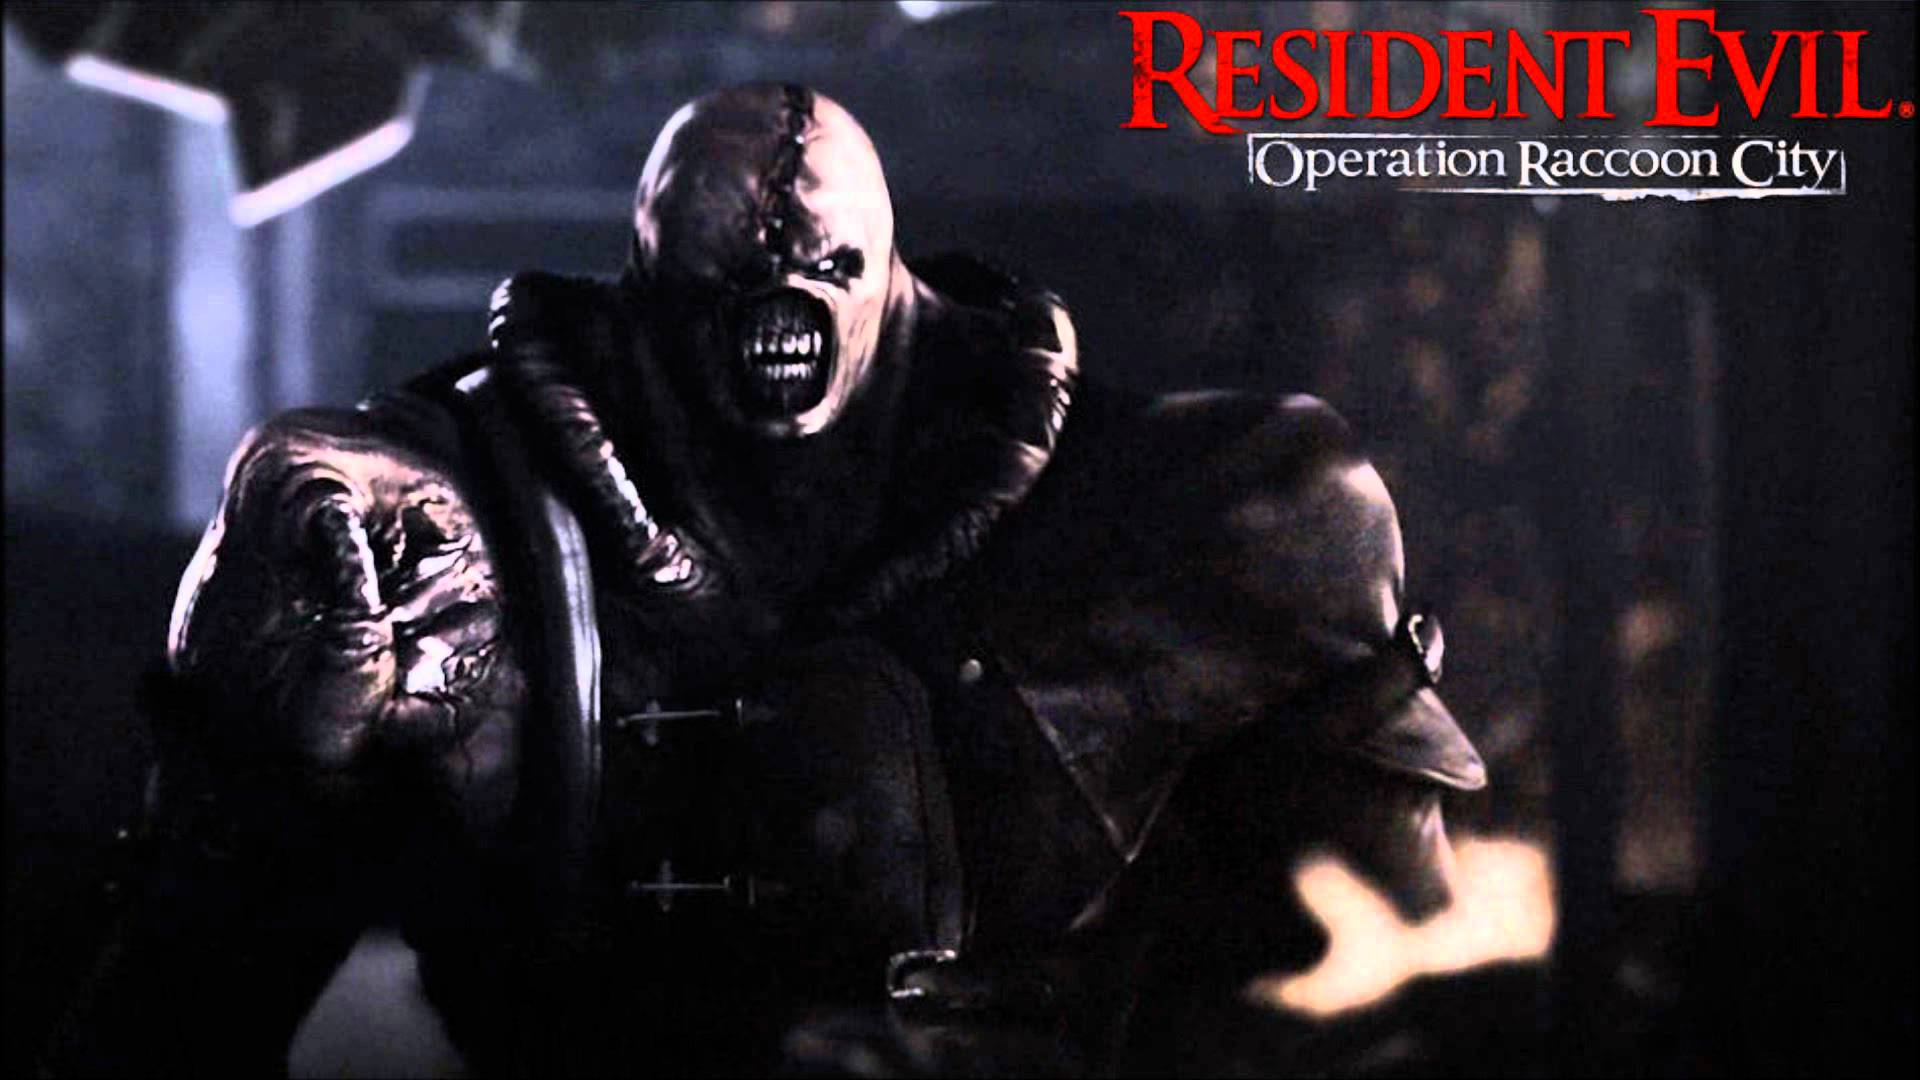 Resident Evil Operation Raccoon City Wallpapers 1080p Wallpaper Cave